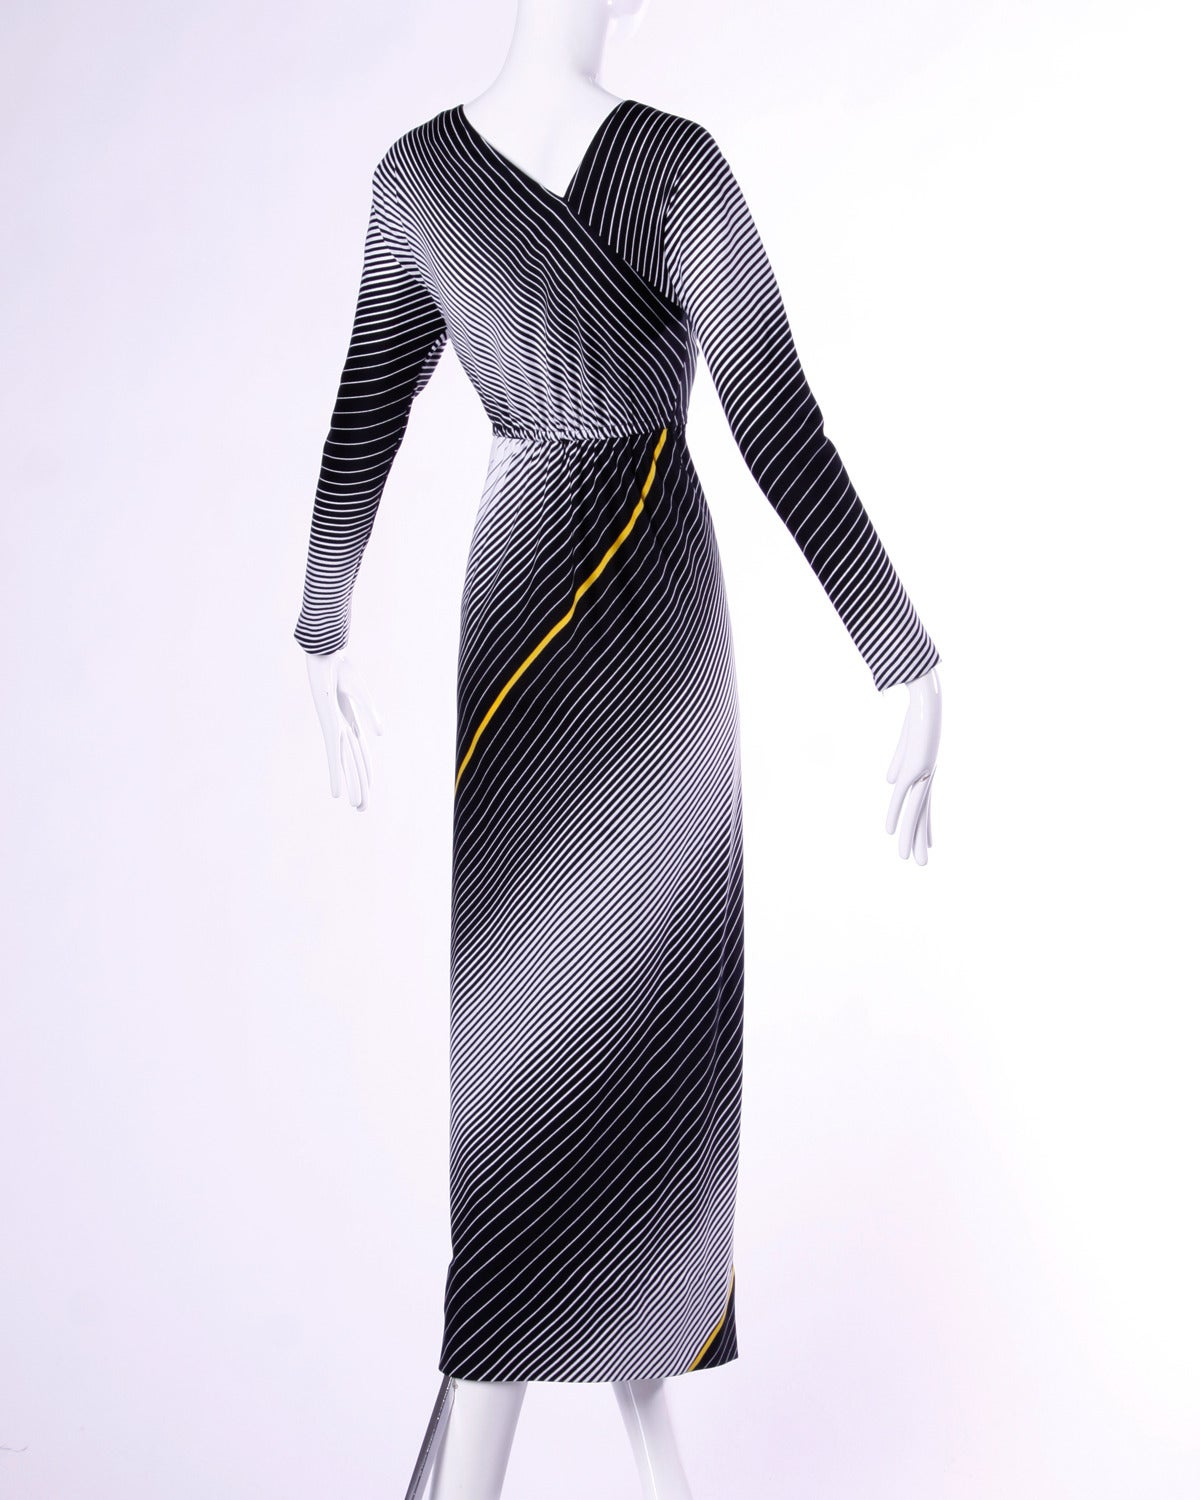 Vintage op art maxi dress by Victor Costa with black and white stripes.   Details:  Unlined No Closure/ Fabric Contains Stretch Marked Size: 6 Color: Black/ White/ Yellow Fabric: Polyester Label: Victor Costa  Measurements:  Bust: